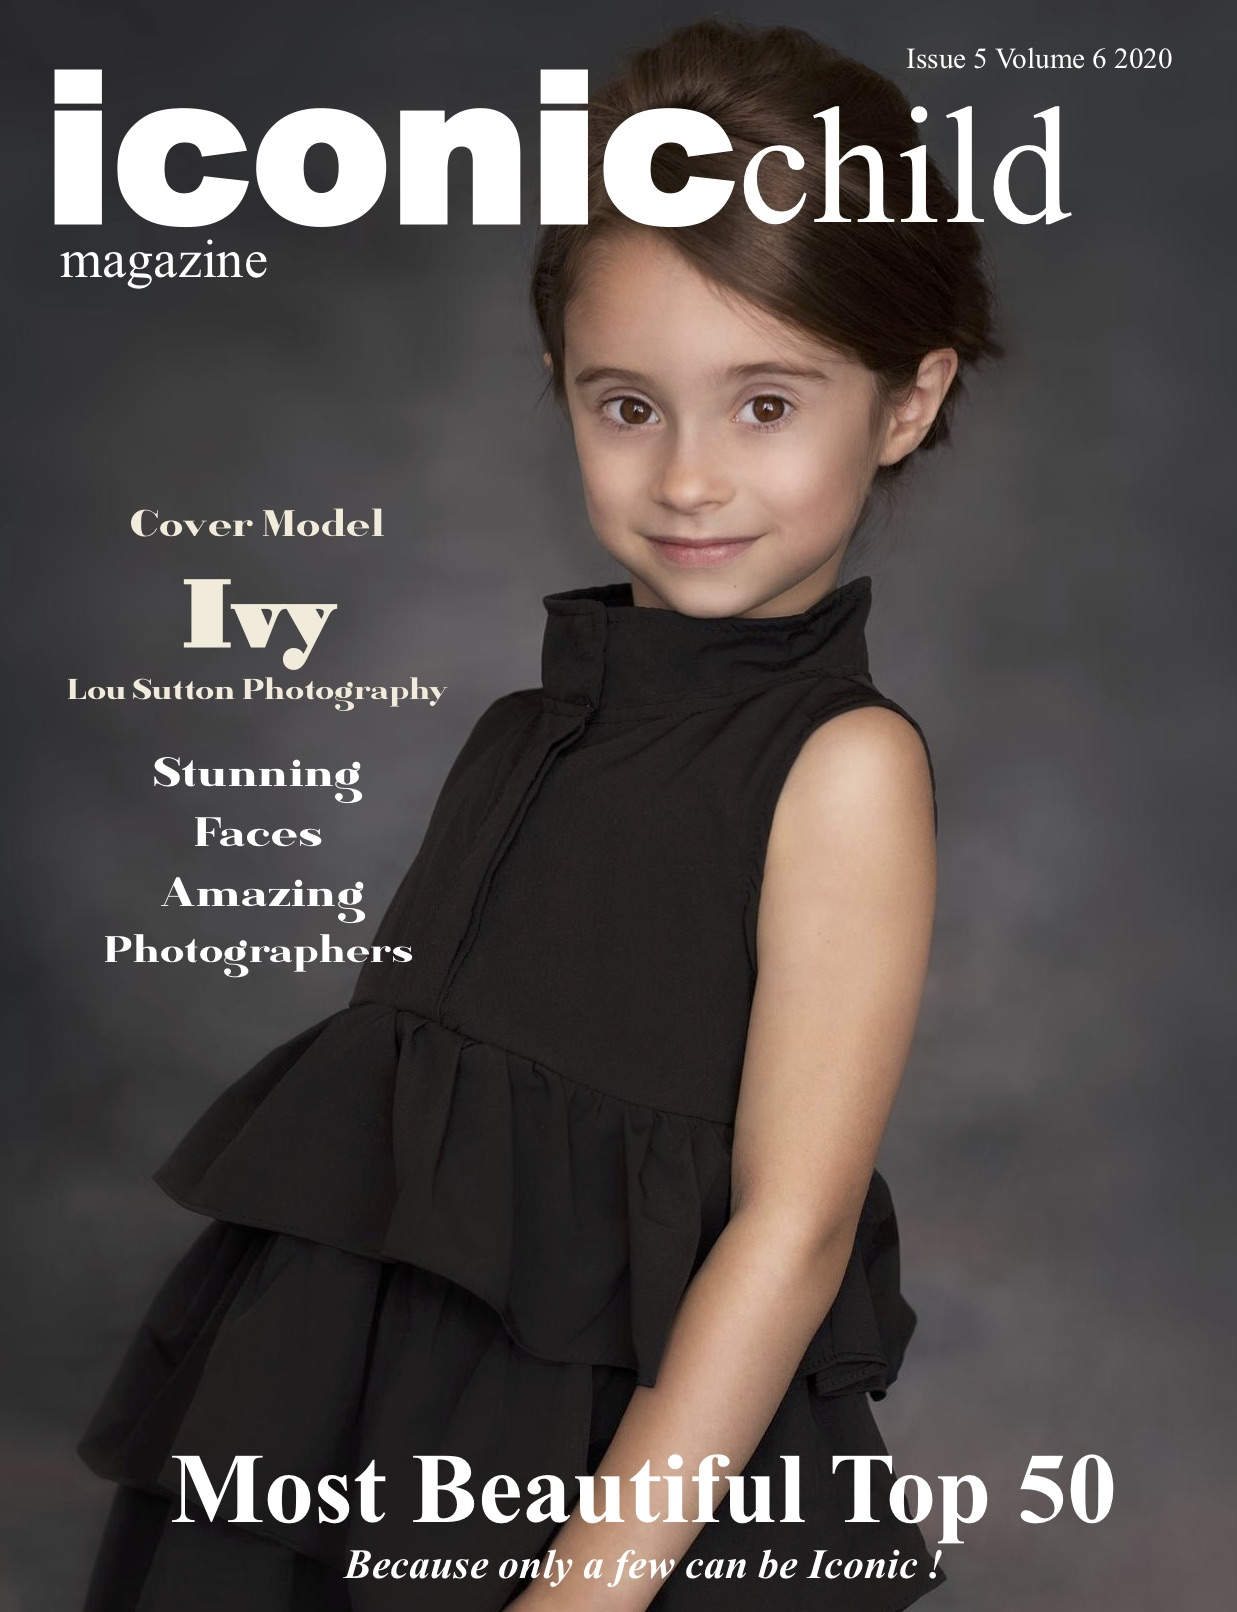 iconic child cover